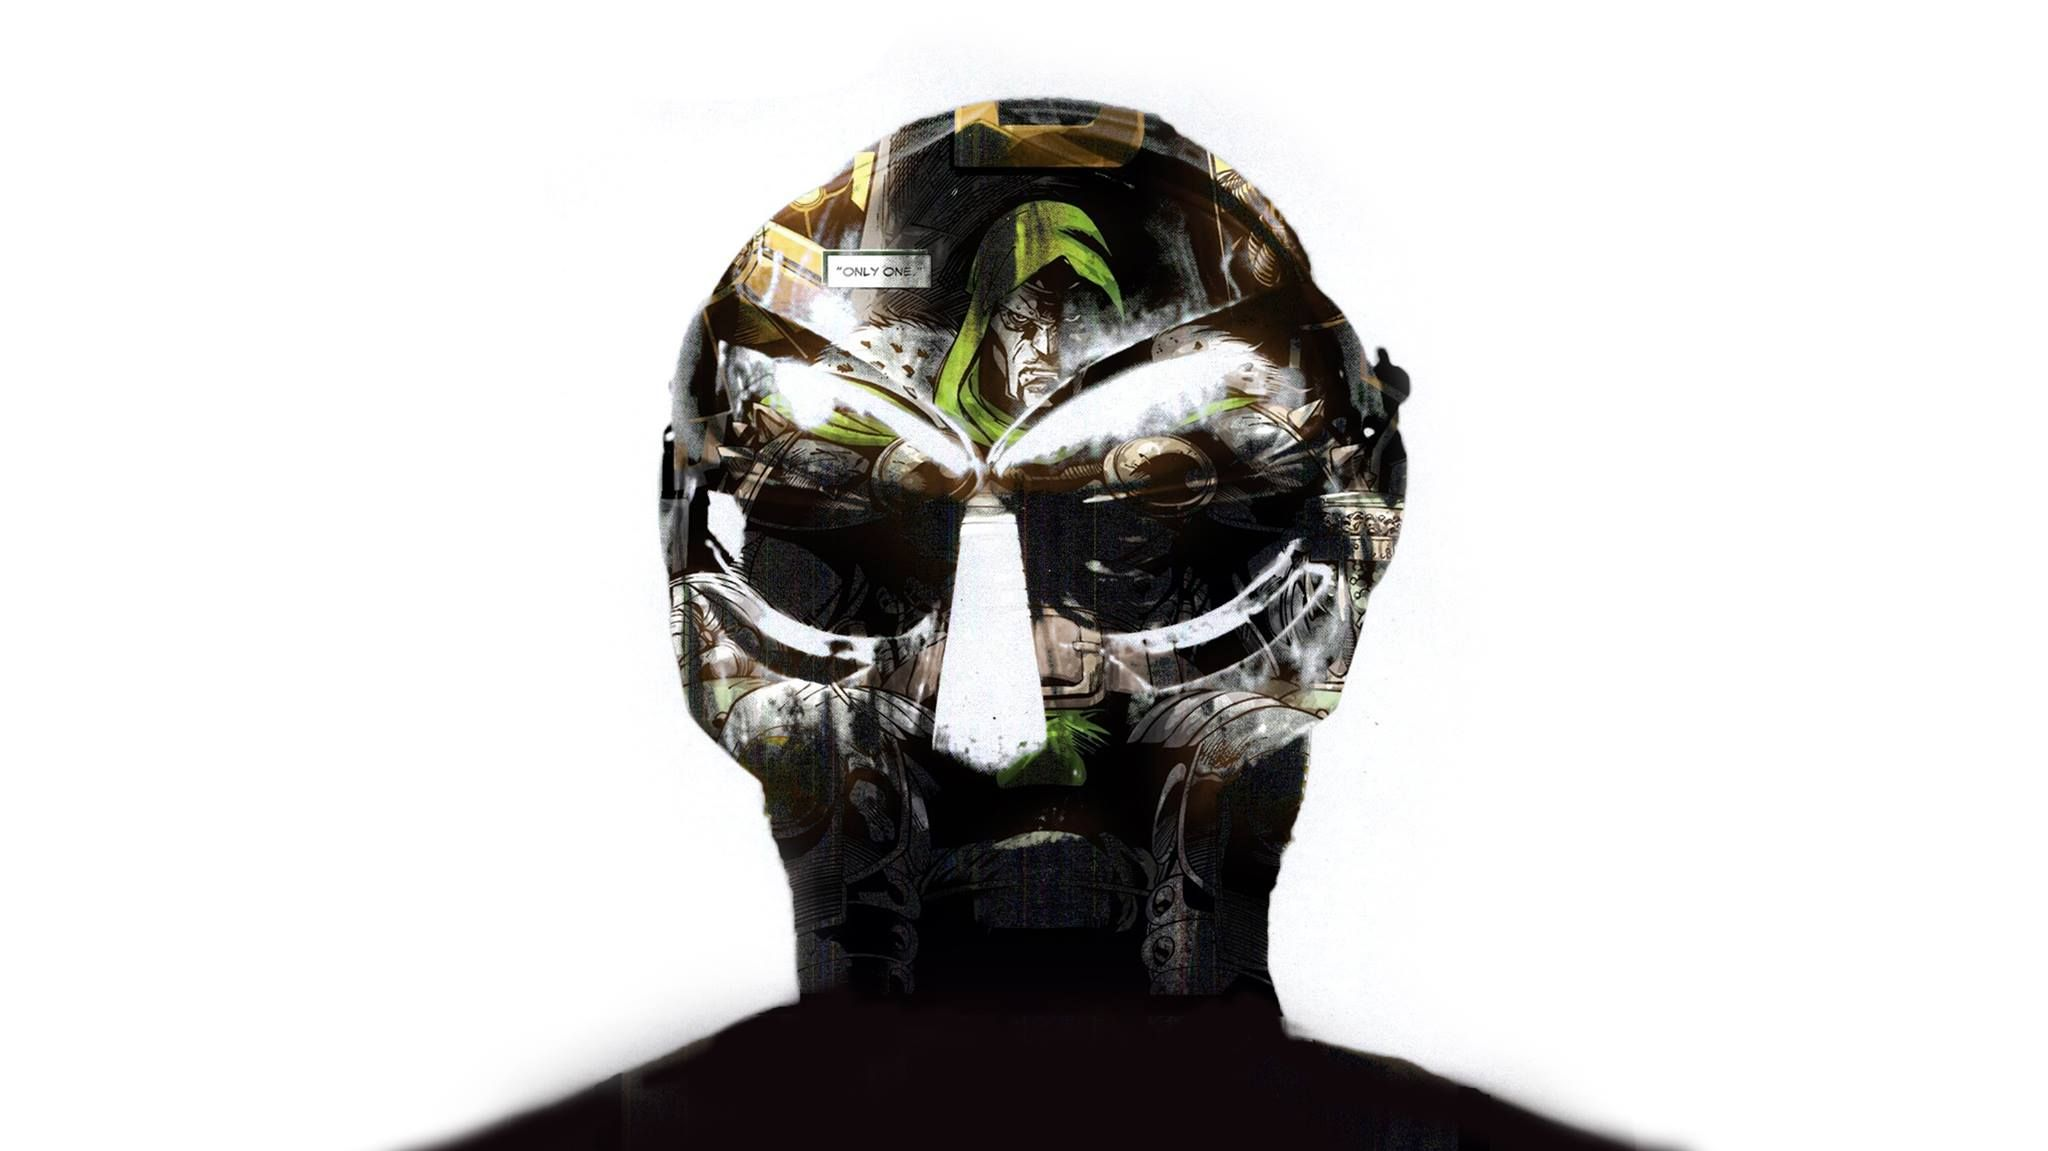 An Mf Doom Wallpaper I Made 1920x1080 Mf Doom Wallpaper Doom